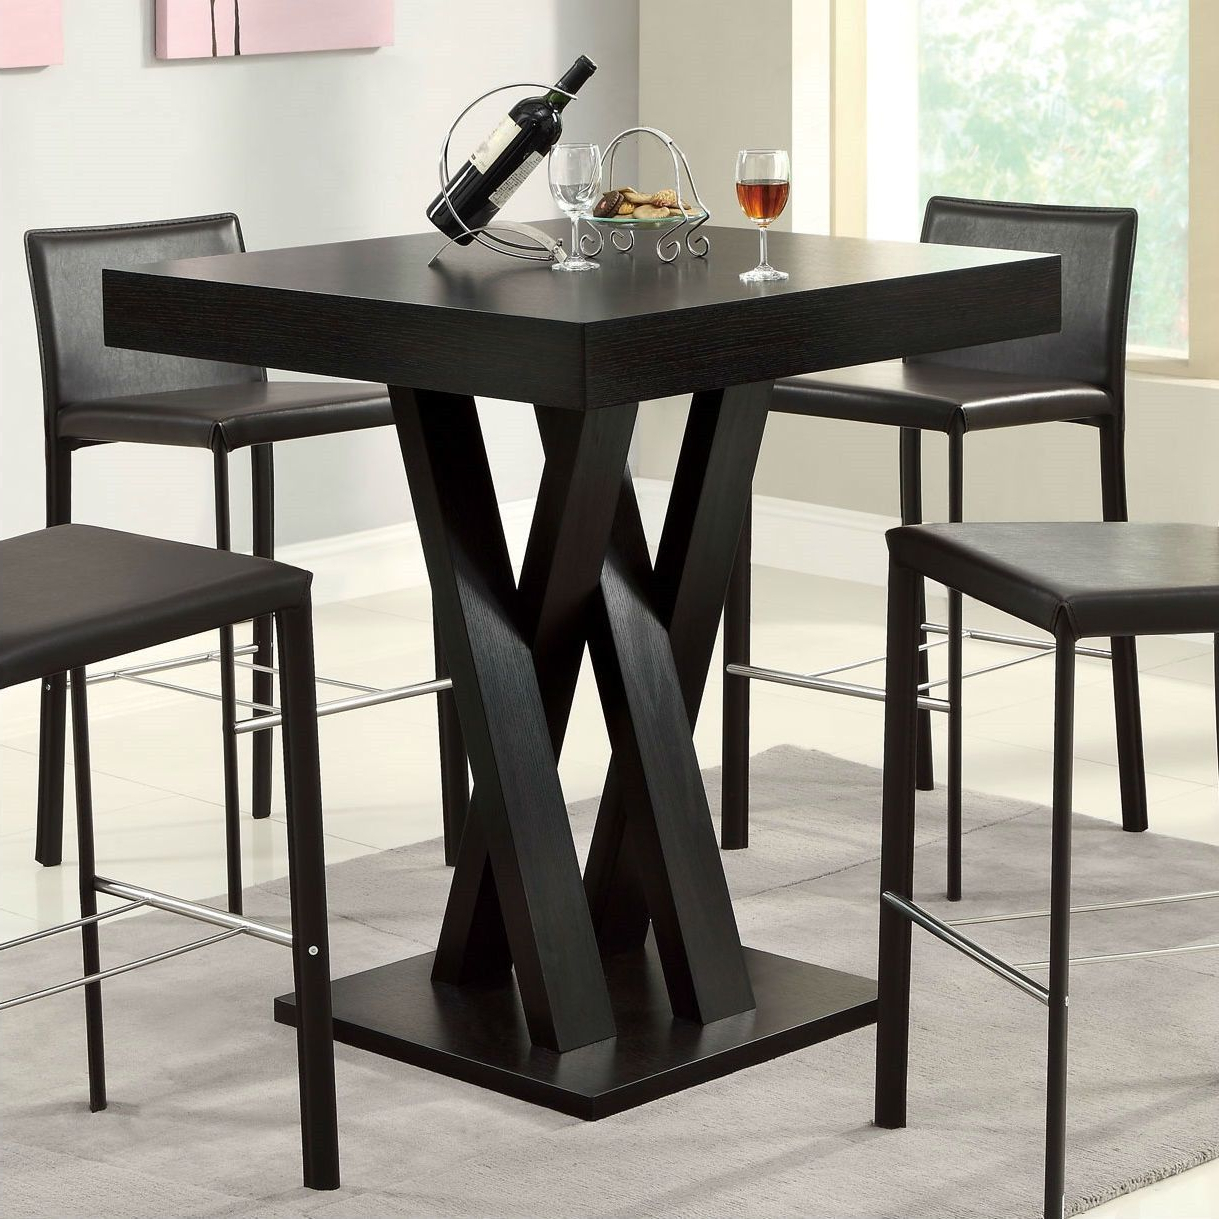 Chrome Contemporary Square Casual Dining Tables Regarding Popular Modern 40 Inch High Square Dining Table In Dark Cappuccino (View 4 of 25)